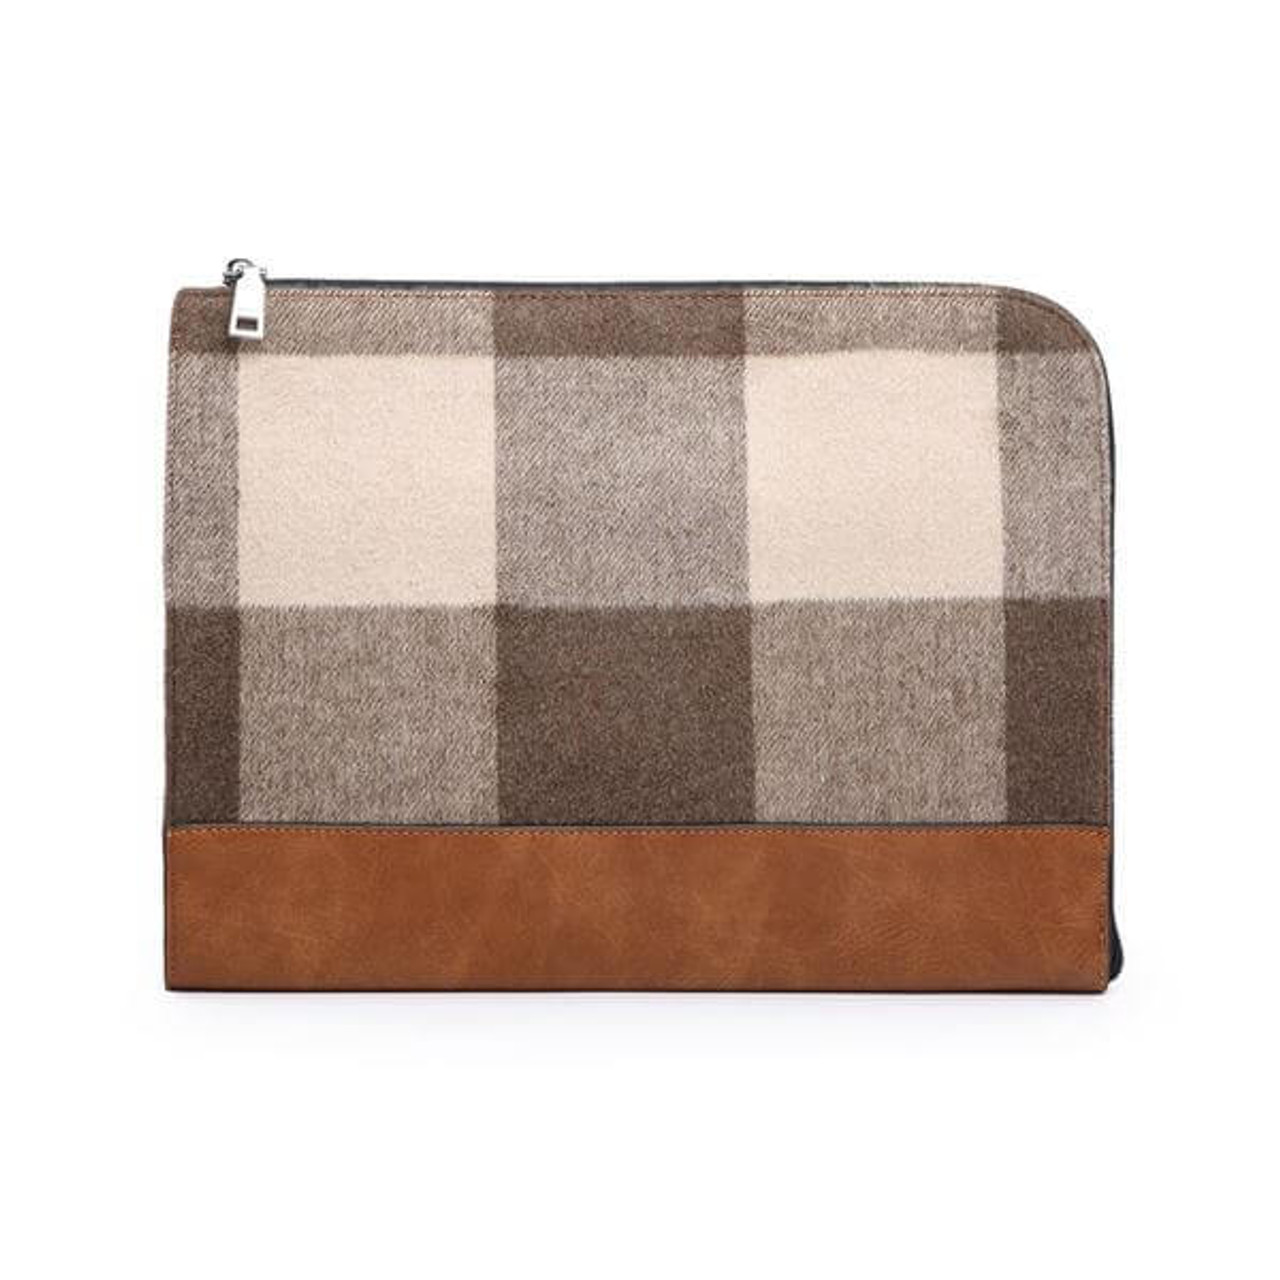 Adele Jen and Co Laptop case clutch brown taupe wide plaid check